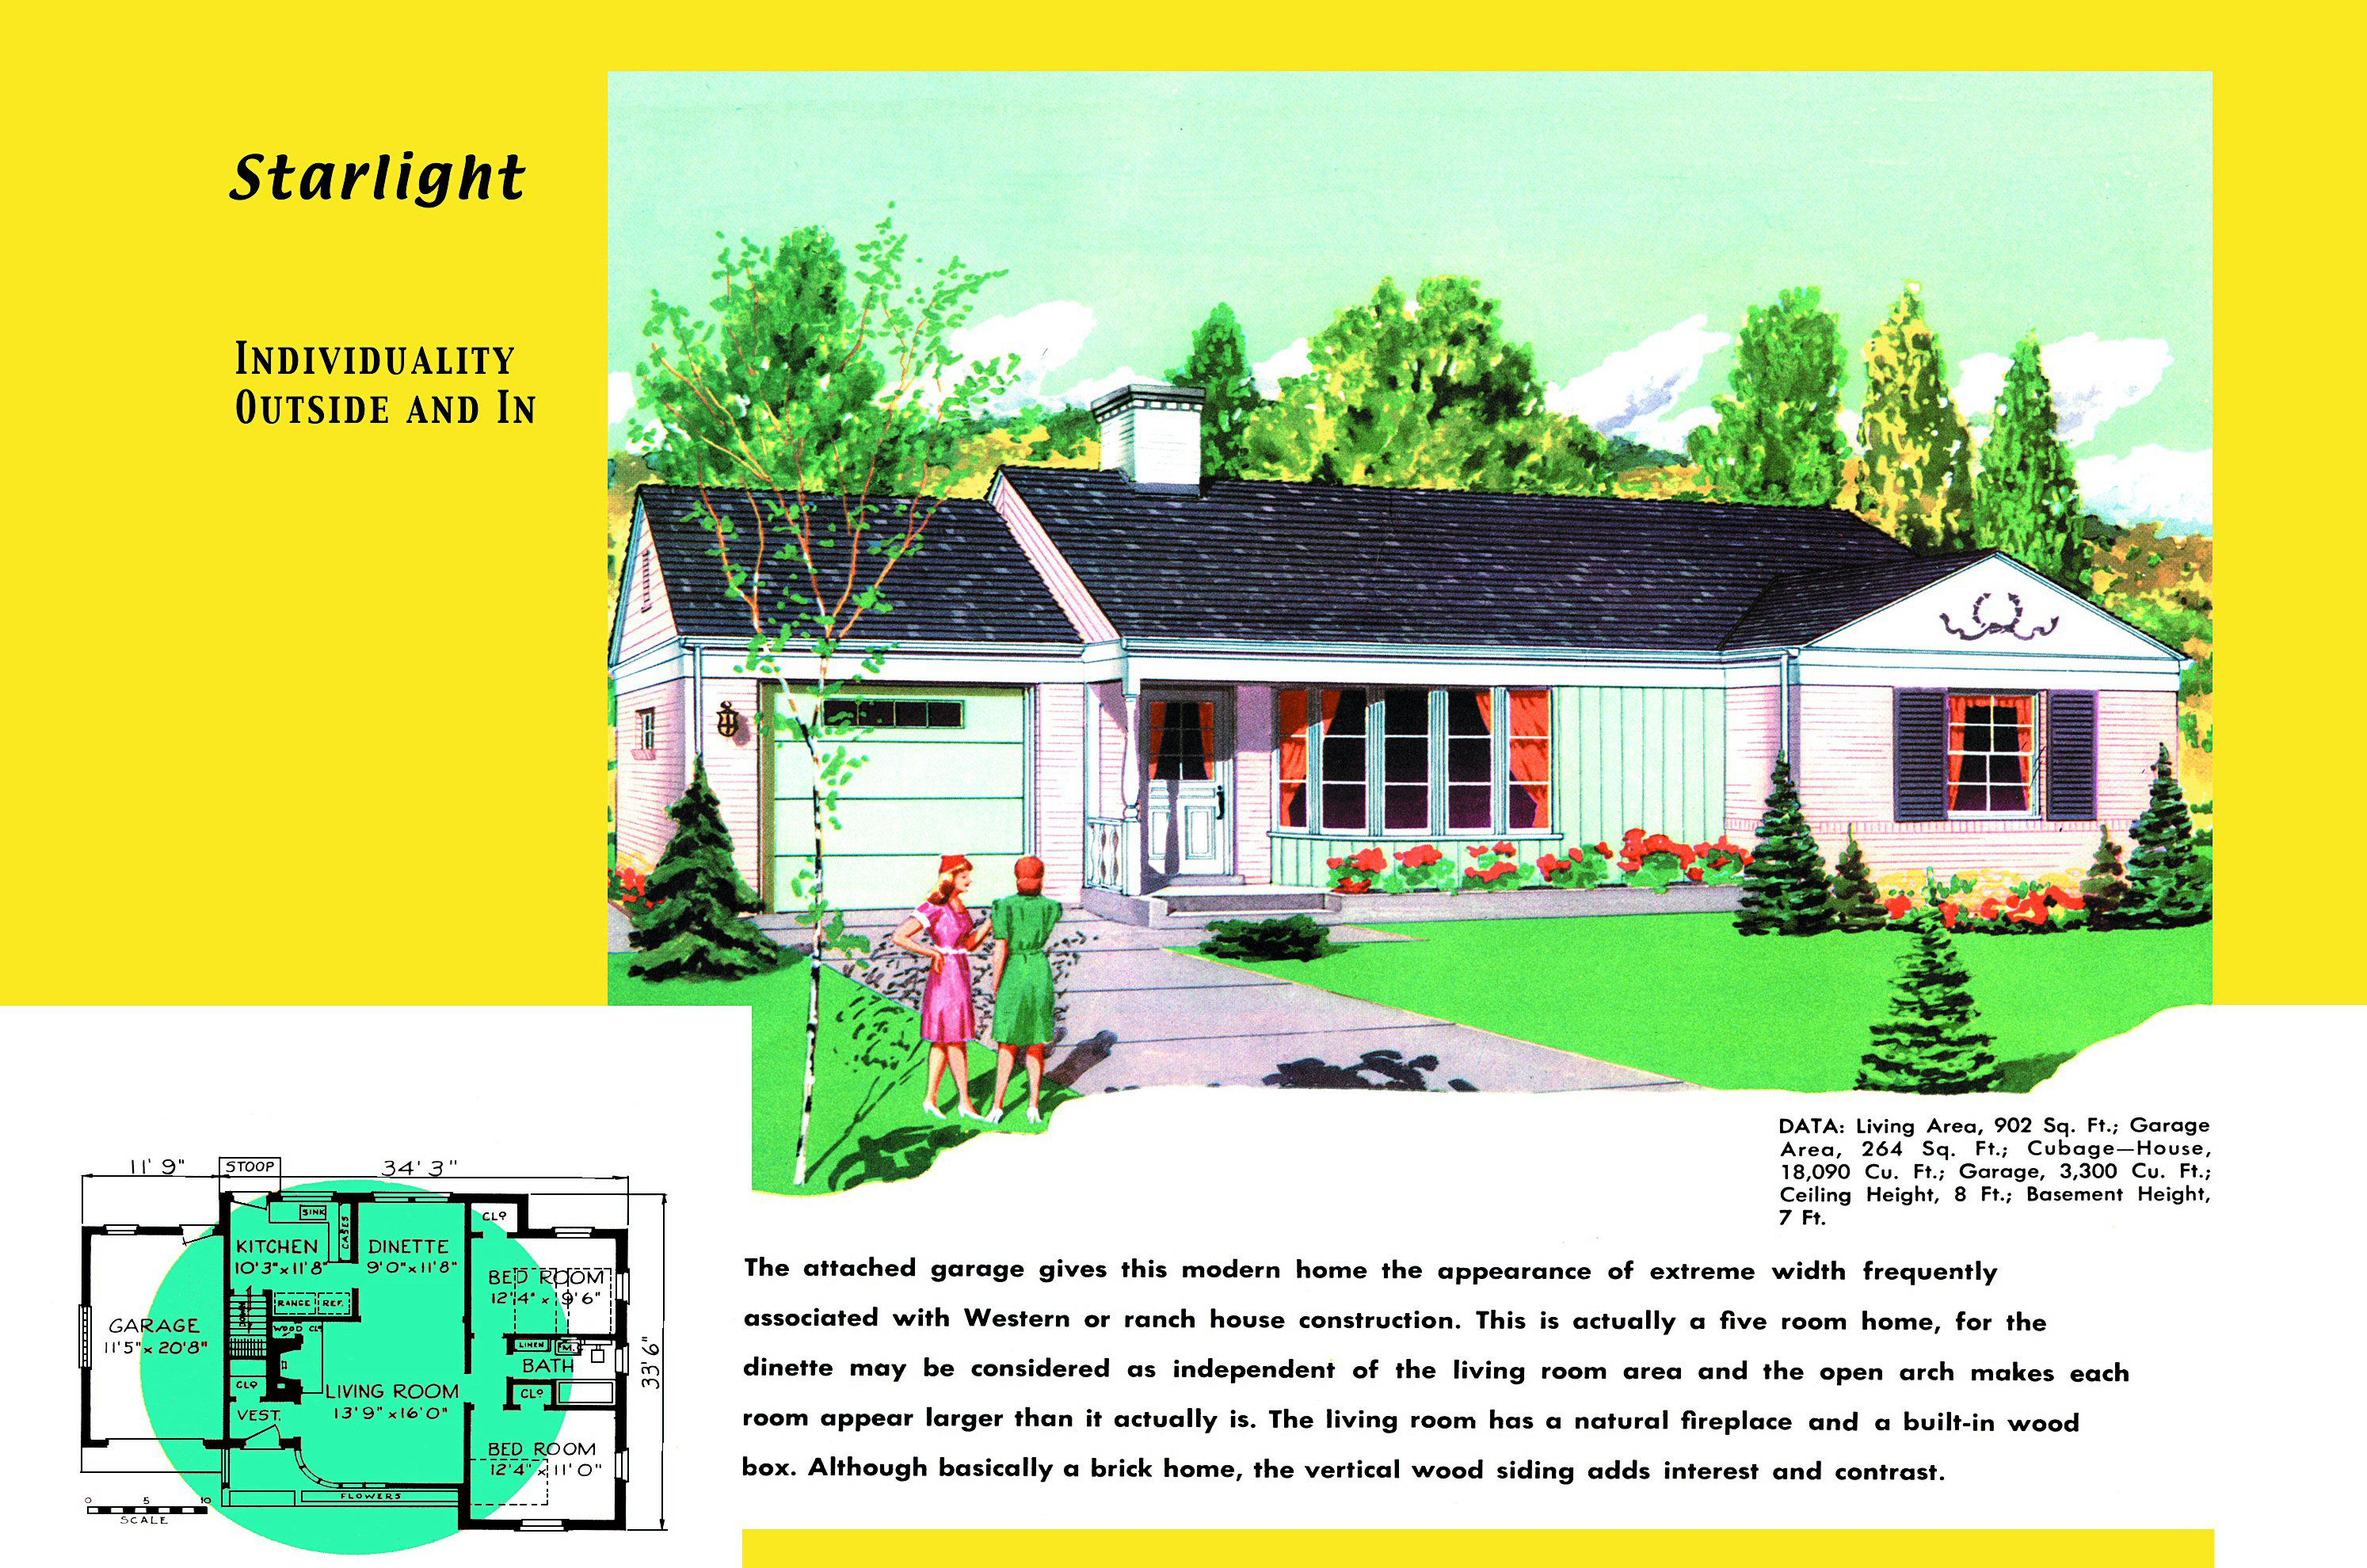 1950s House Plans for Popular Ranch Homes